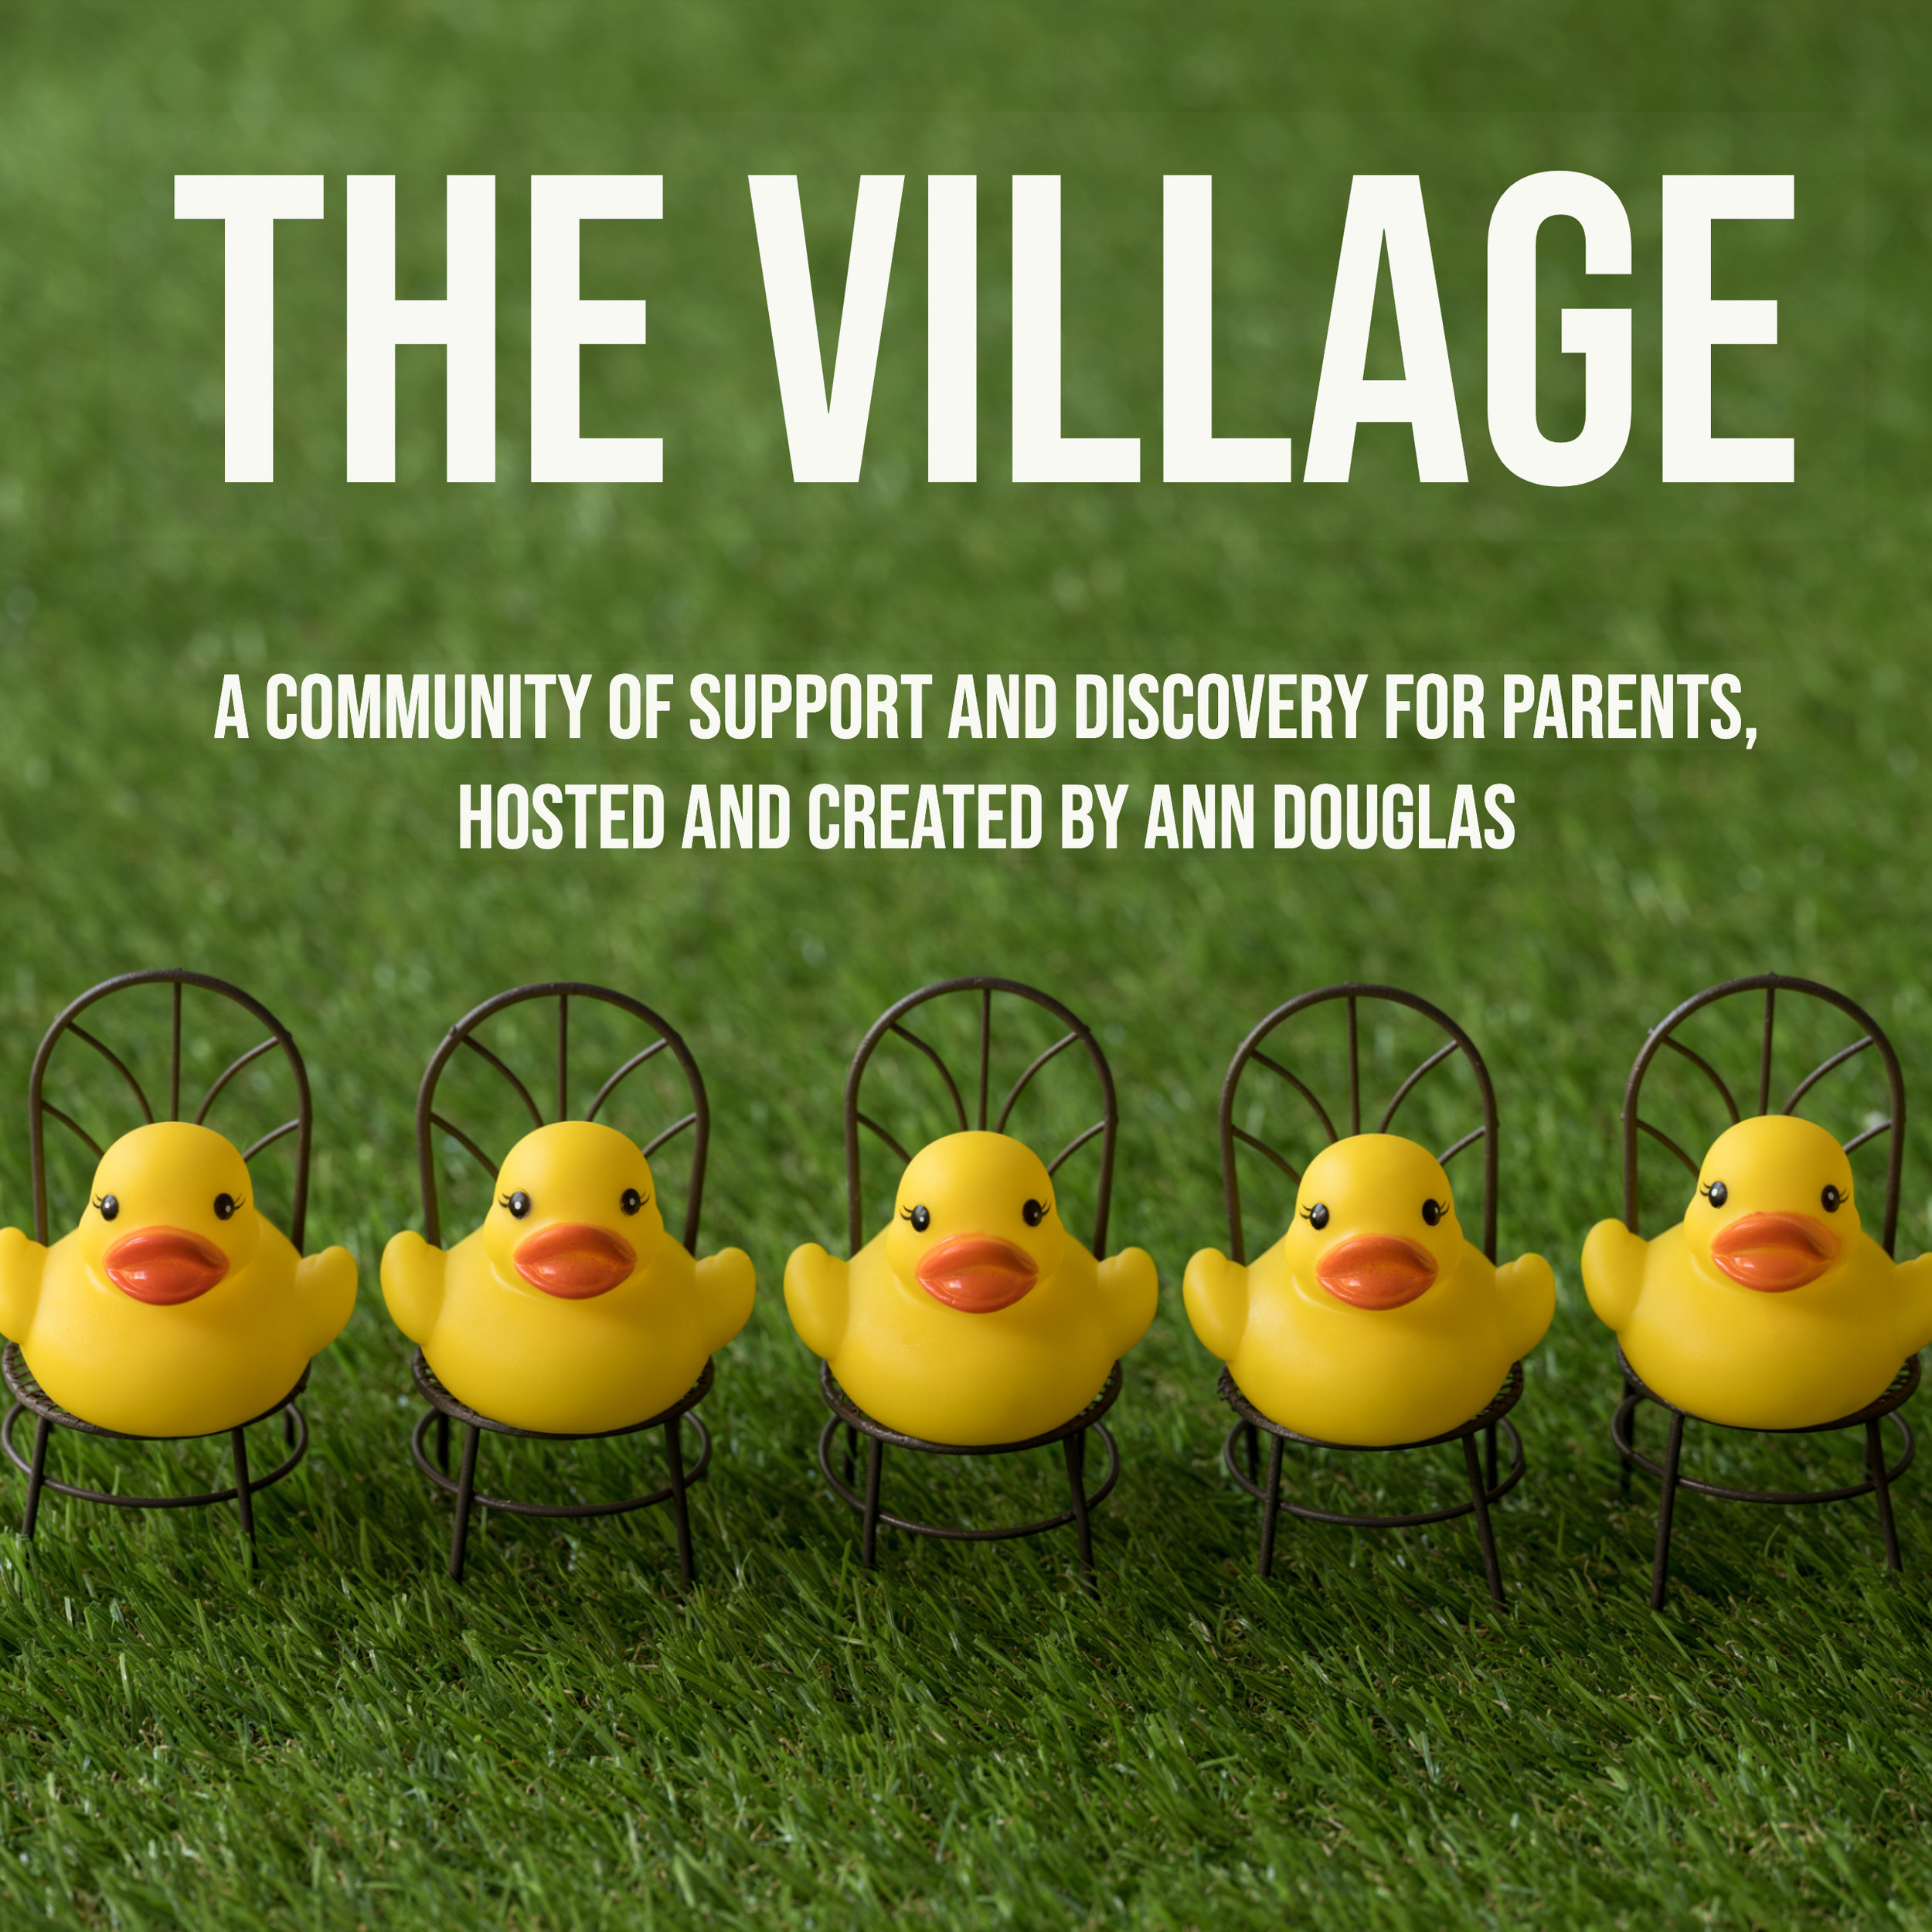 The Village community Copy.jpg